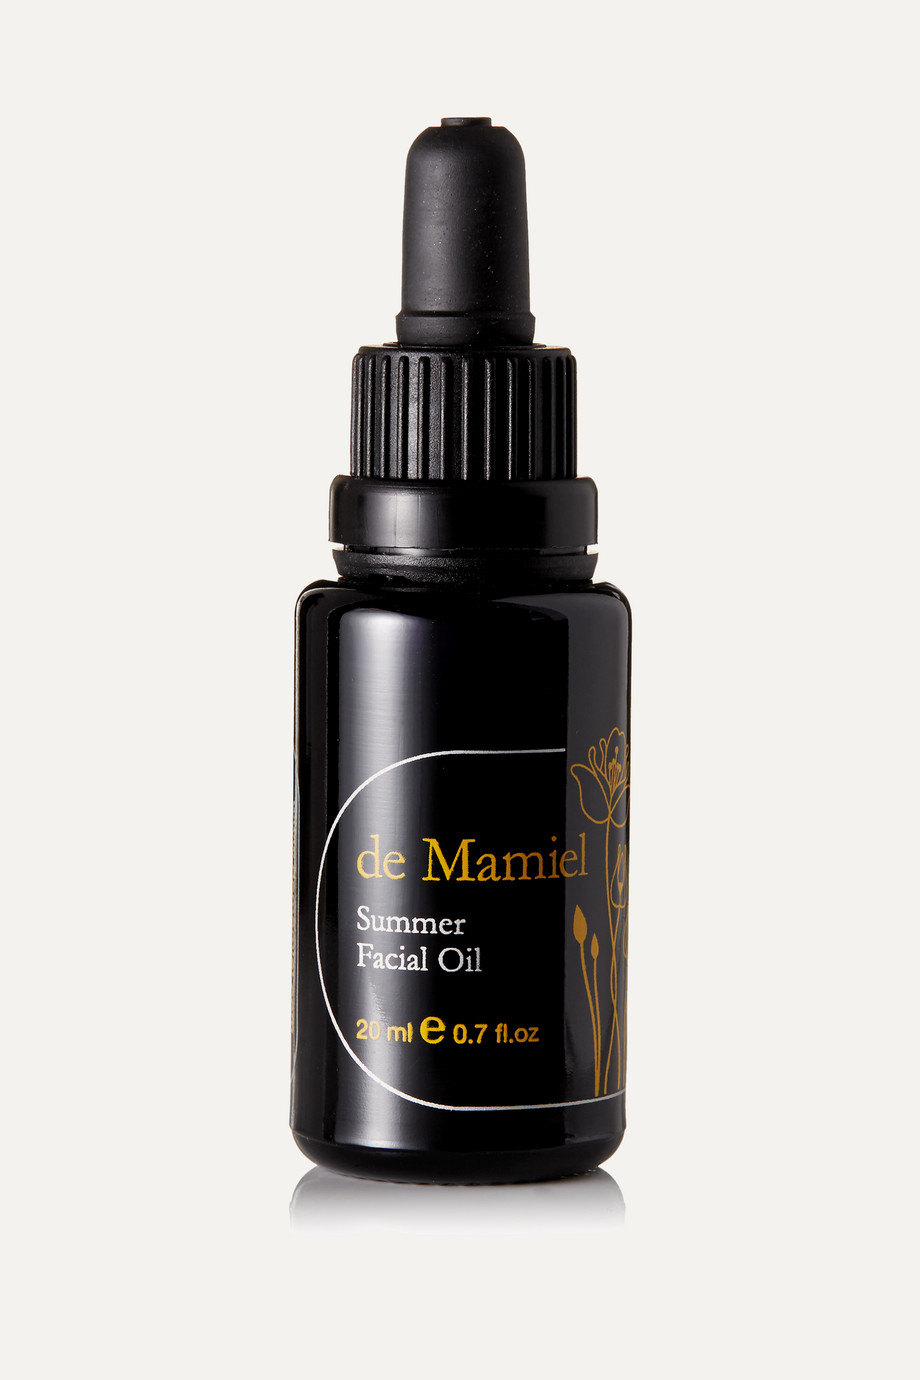 DE MAMIEL Summer Facial Oil, 20ml